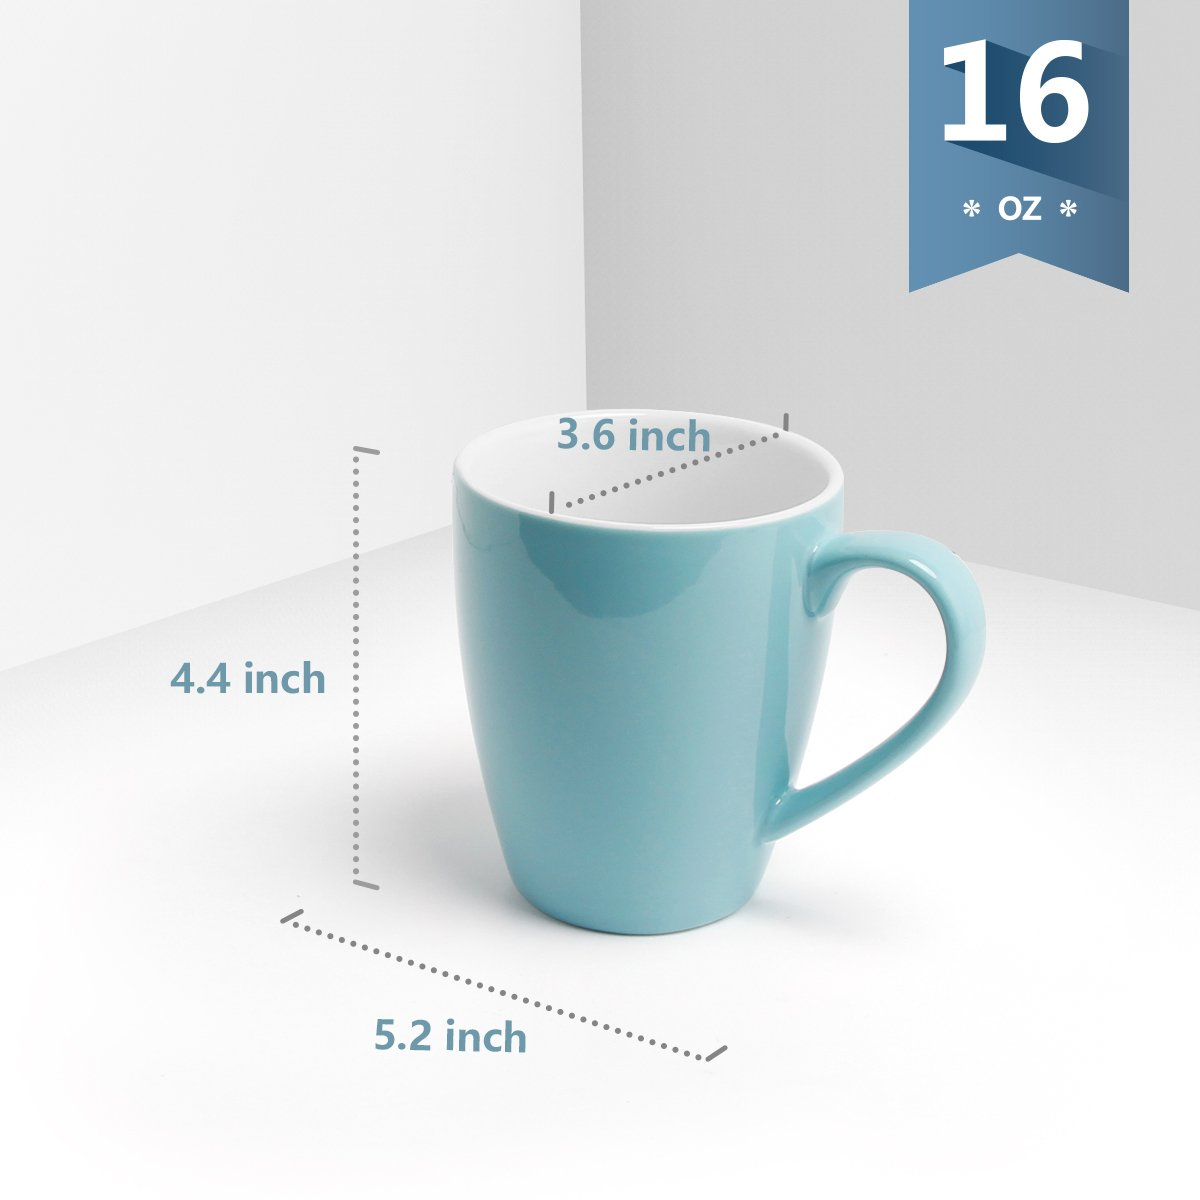 Sweese 6203 Porcelain Mugs - 16 Ounce for Coffee, Tea, Cocoa, Set of 6, Cold Assorted Colors by Sweese (Image #2)